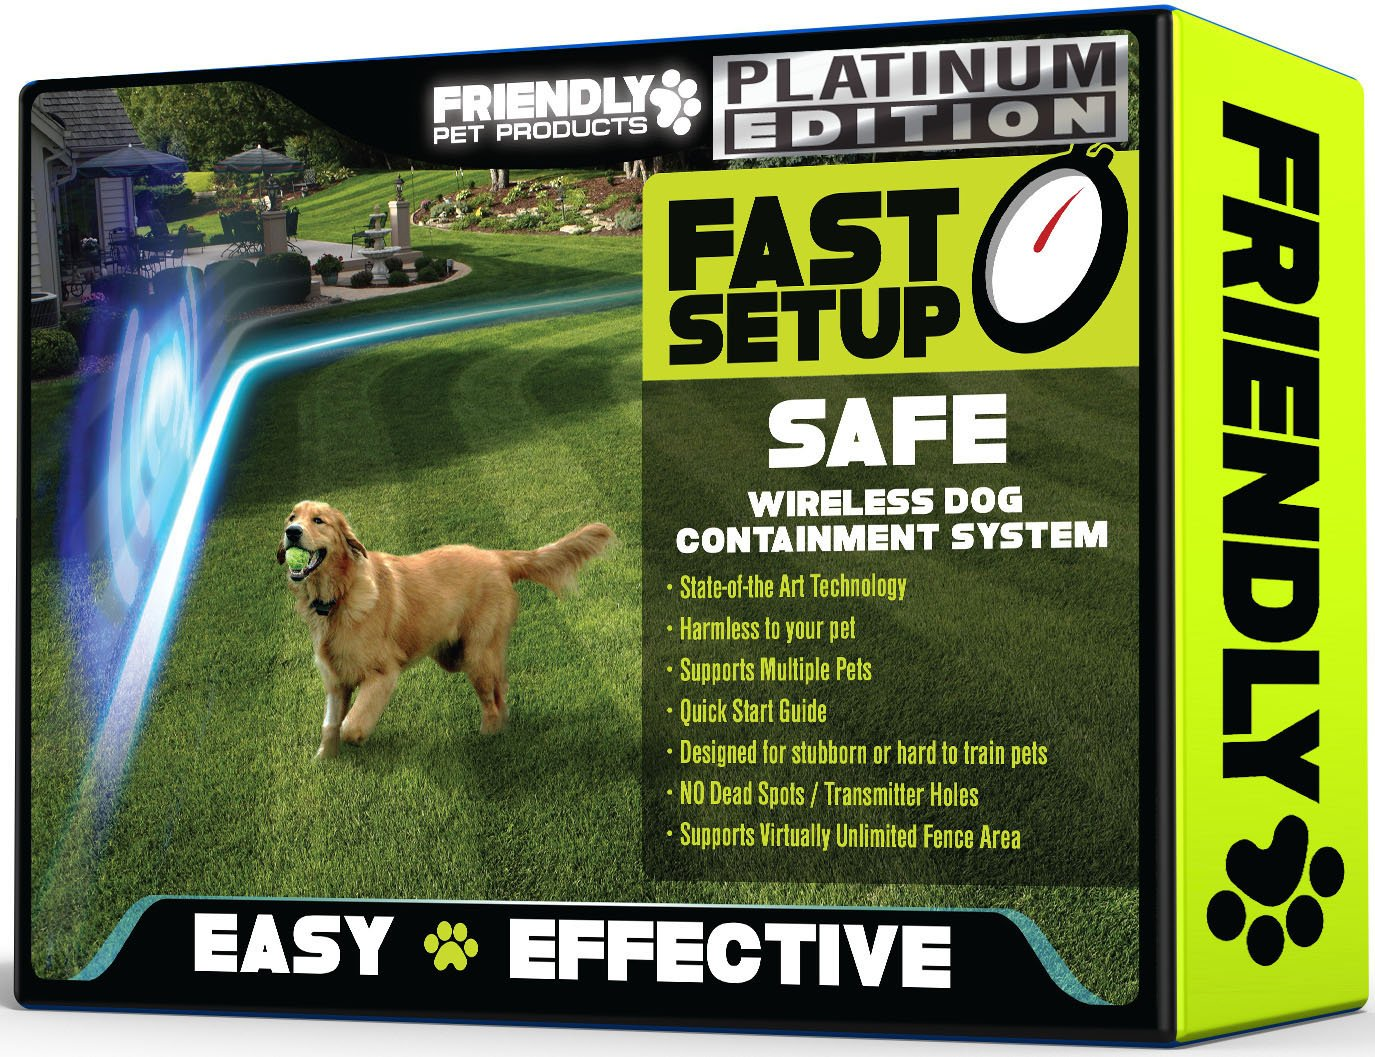 Best Wireless Dog Fence -100% Safe & Reliable - PLATINUM EDITION - Outdoor Pet Fence w/ Radio & In-Ground Cord Electric Wifi Transmitter - Underground Wire is Invisible, Perfect Pet Containment System